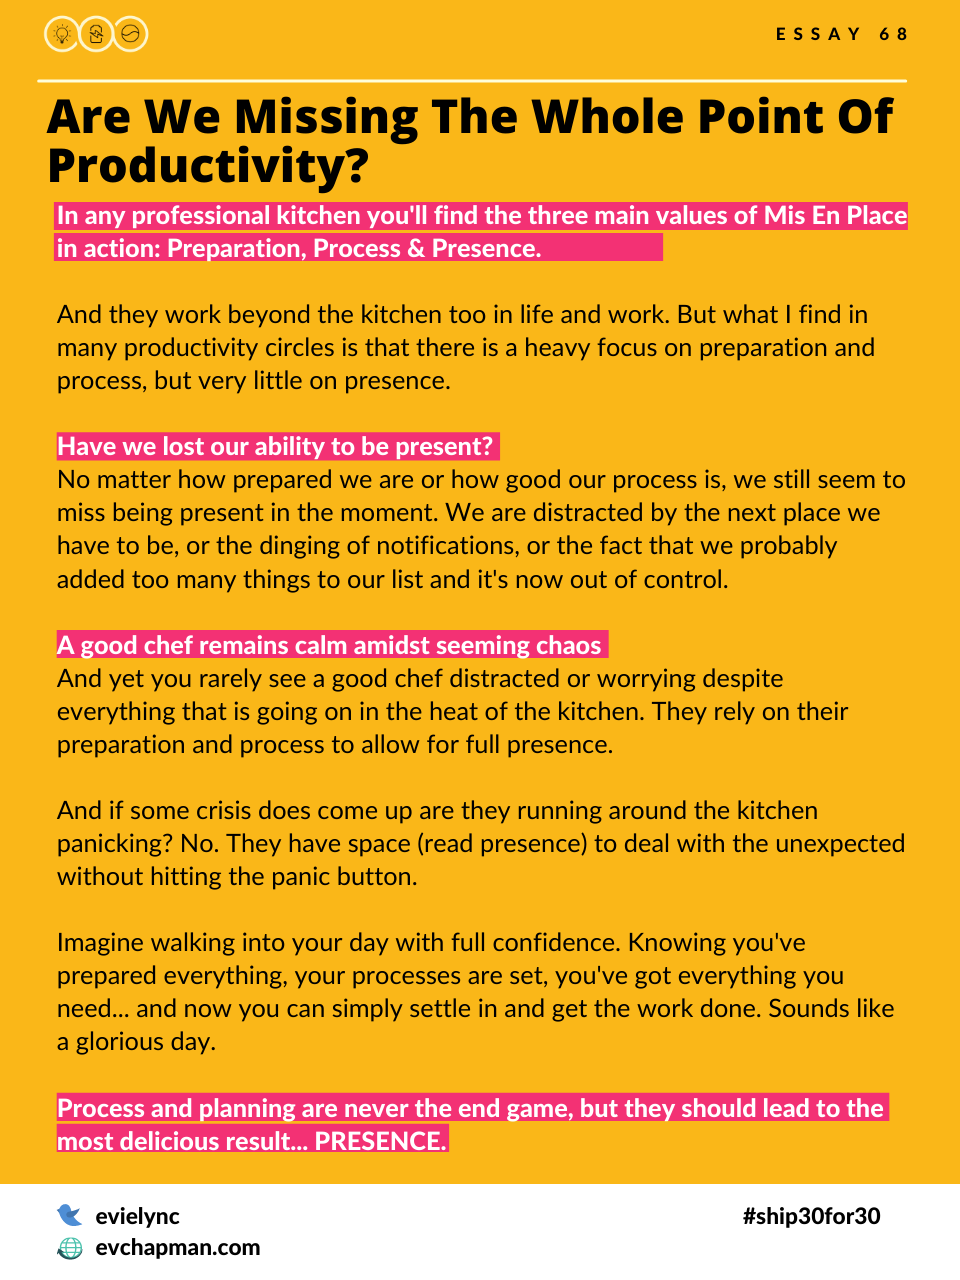 Are We Missing The Whole Point Of Productivity?